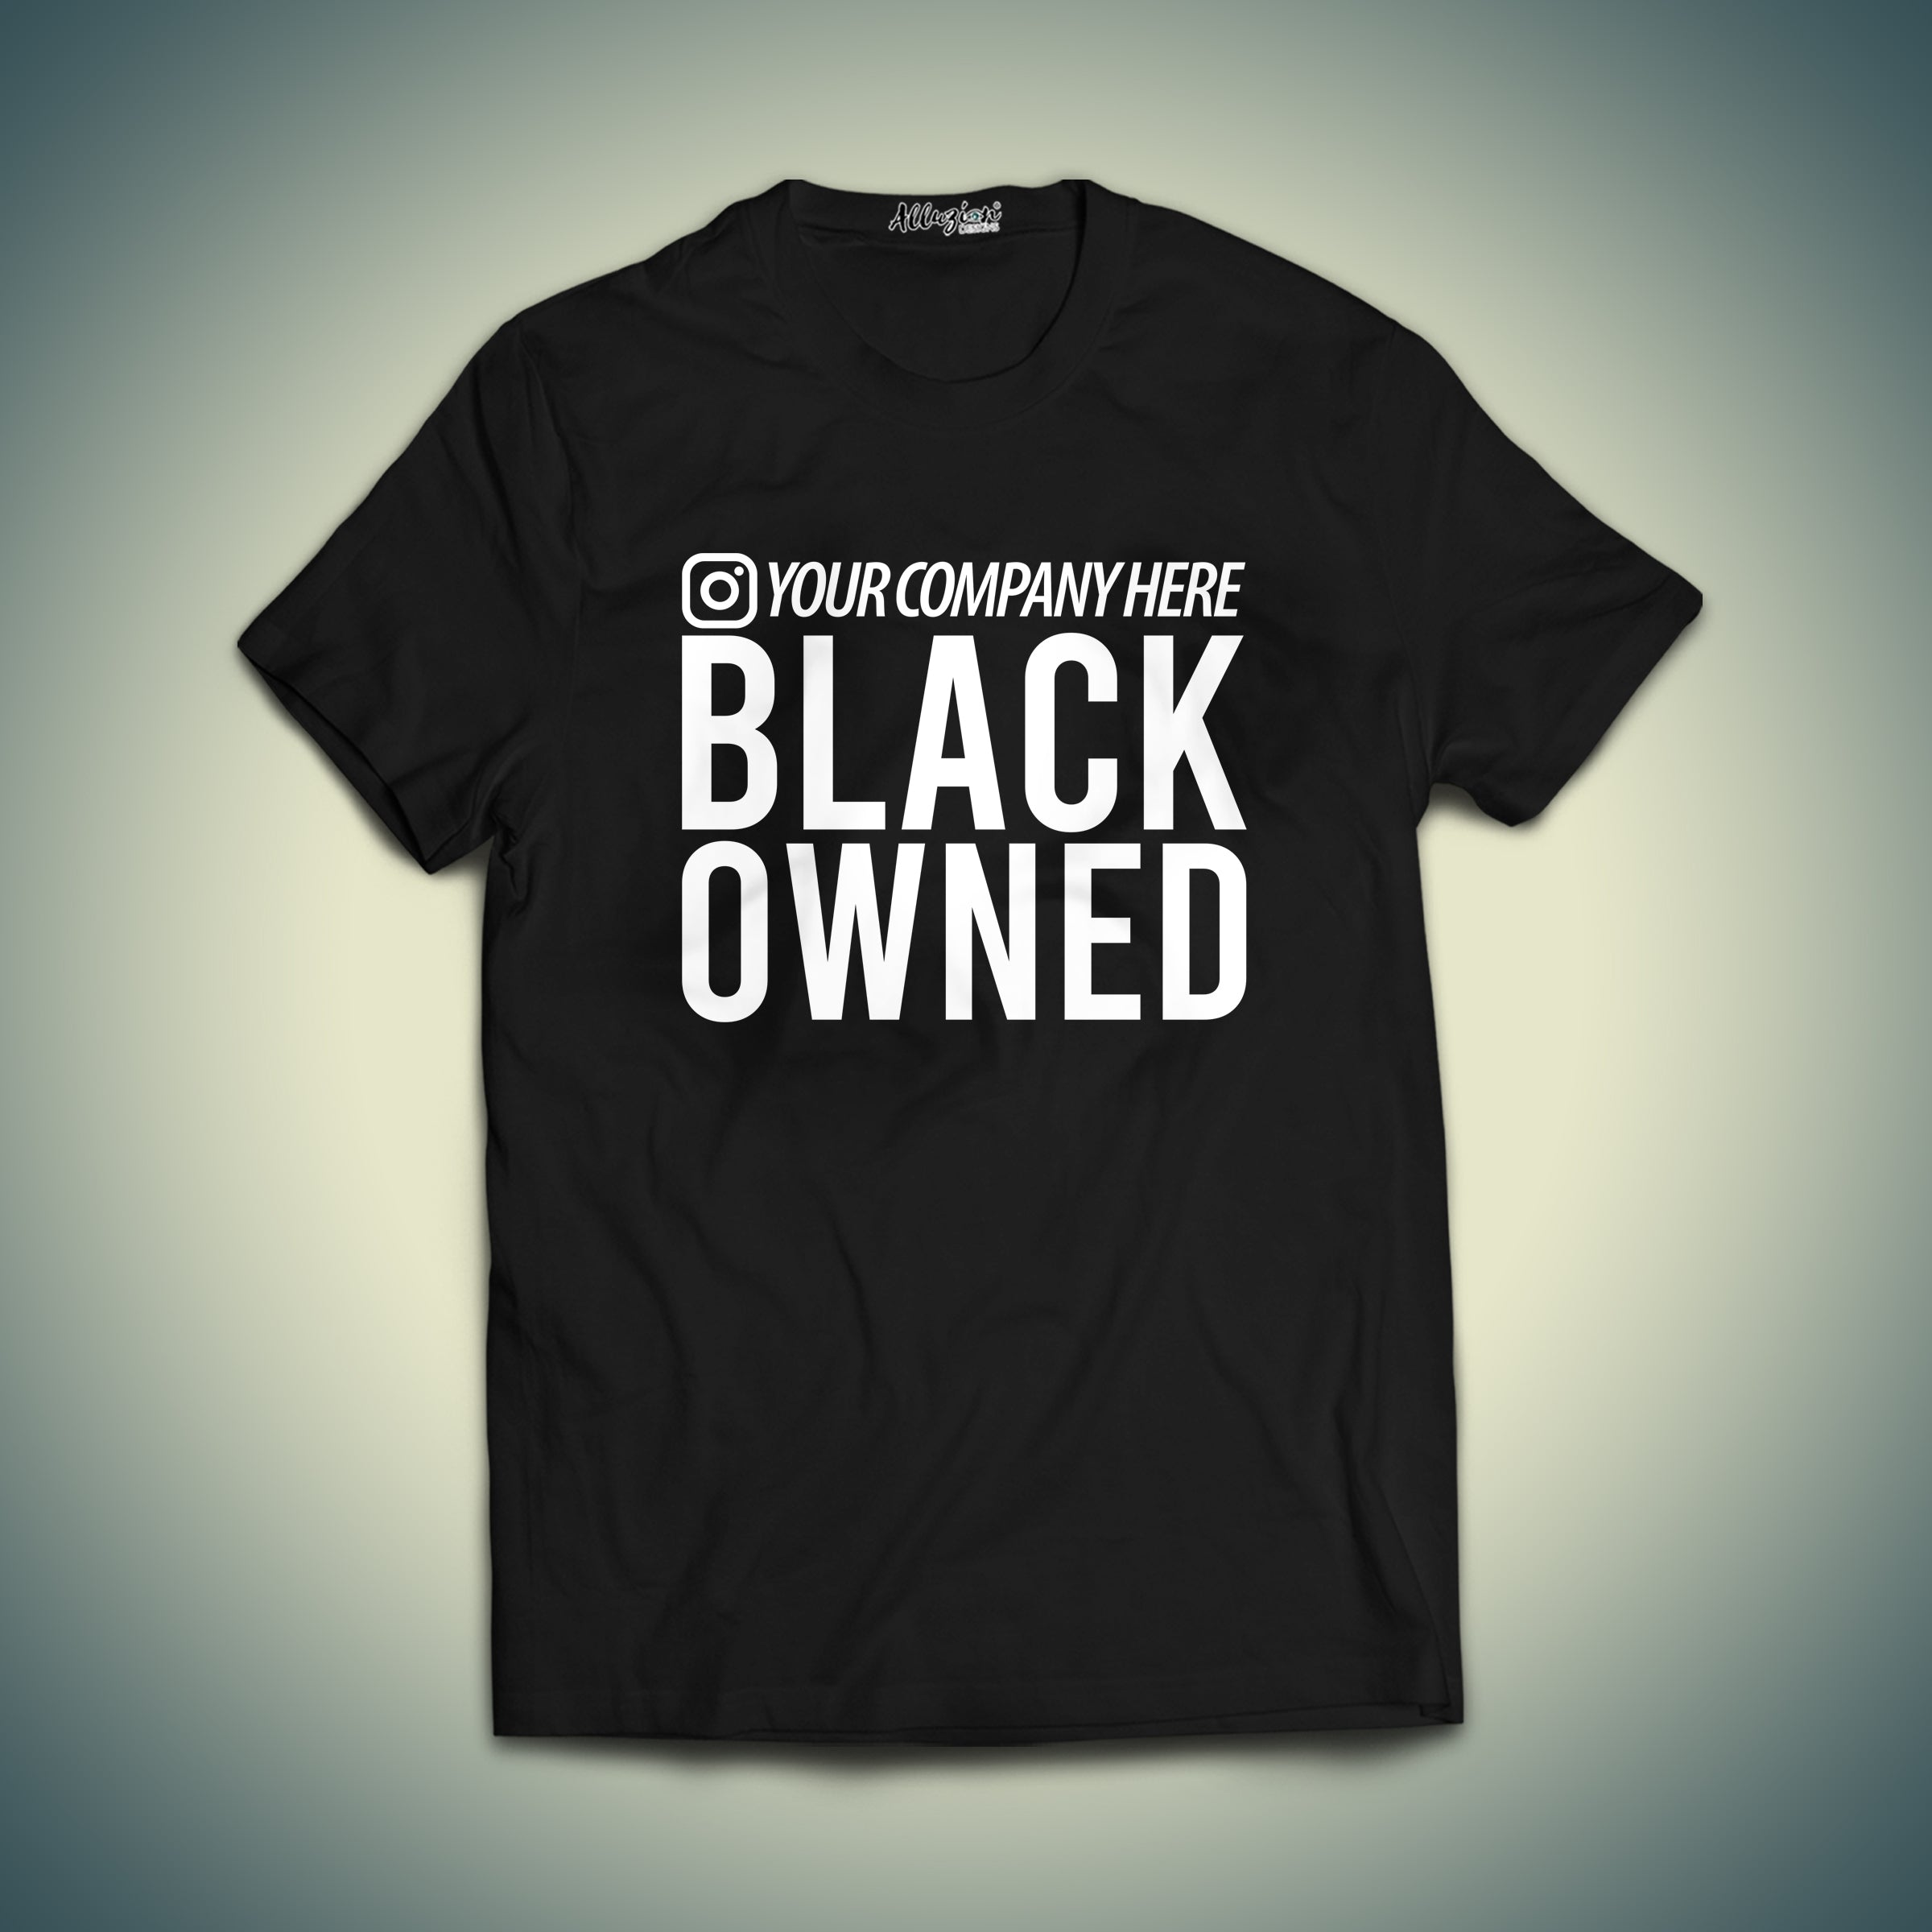 Customize Your Social Media Tag with Black Owned Company T-shirt